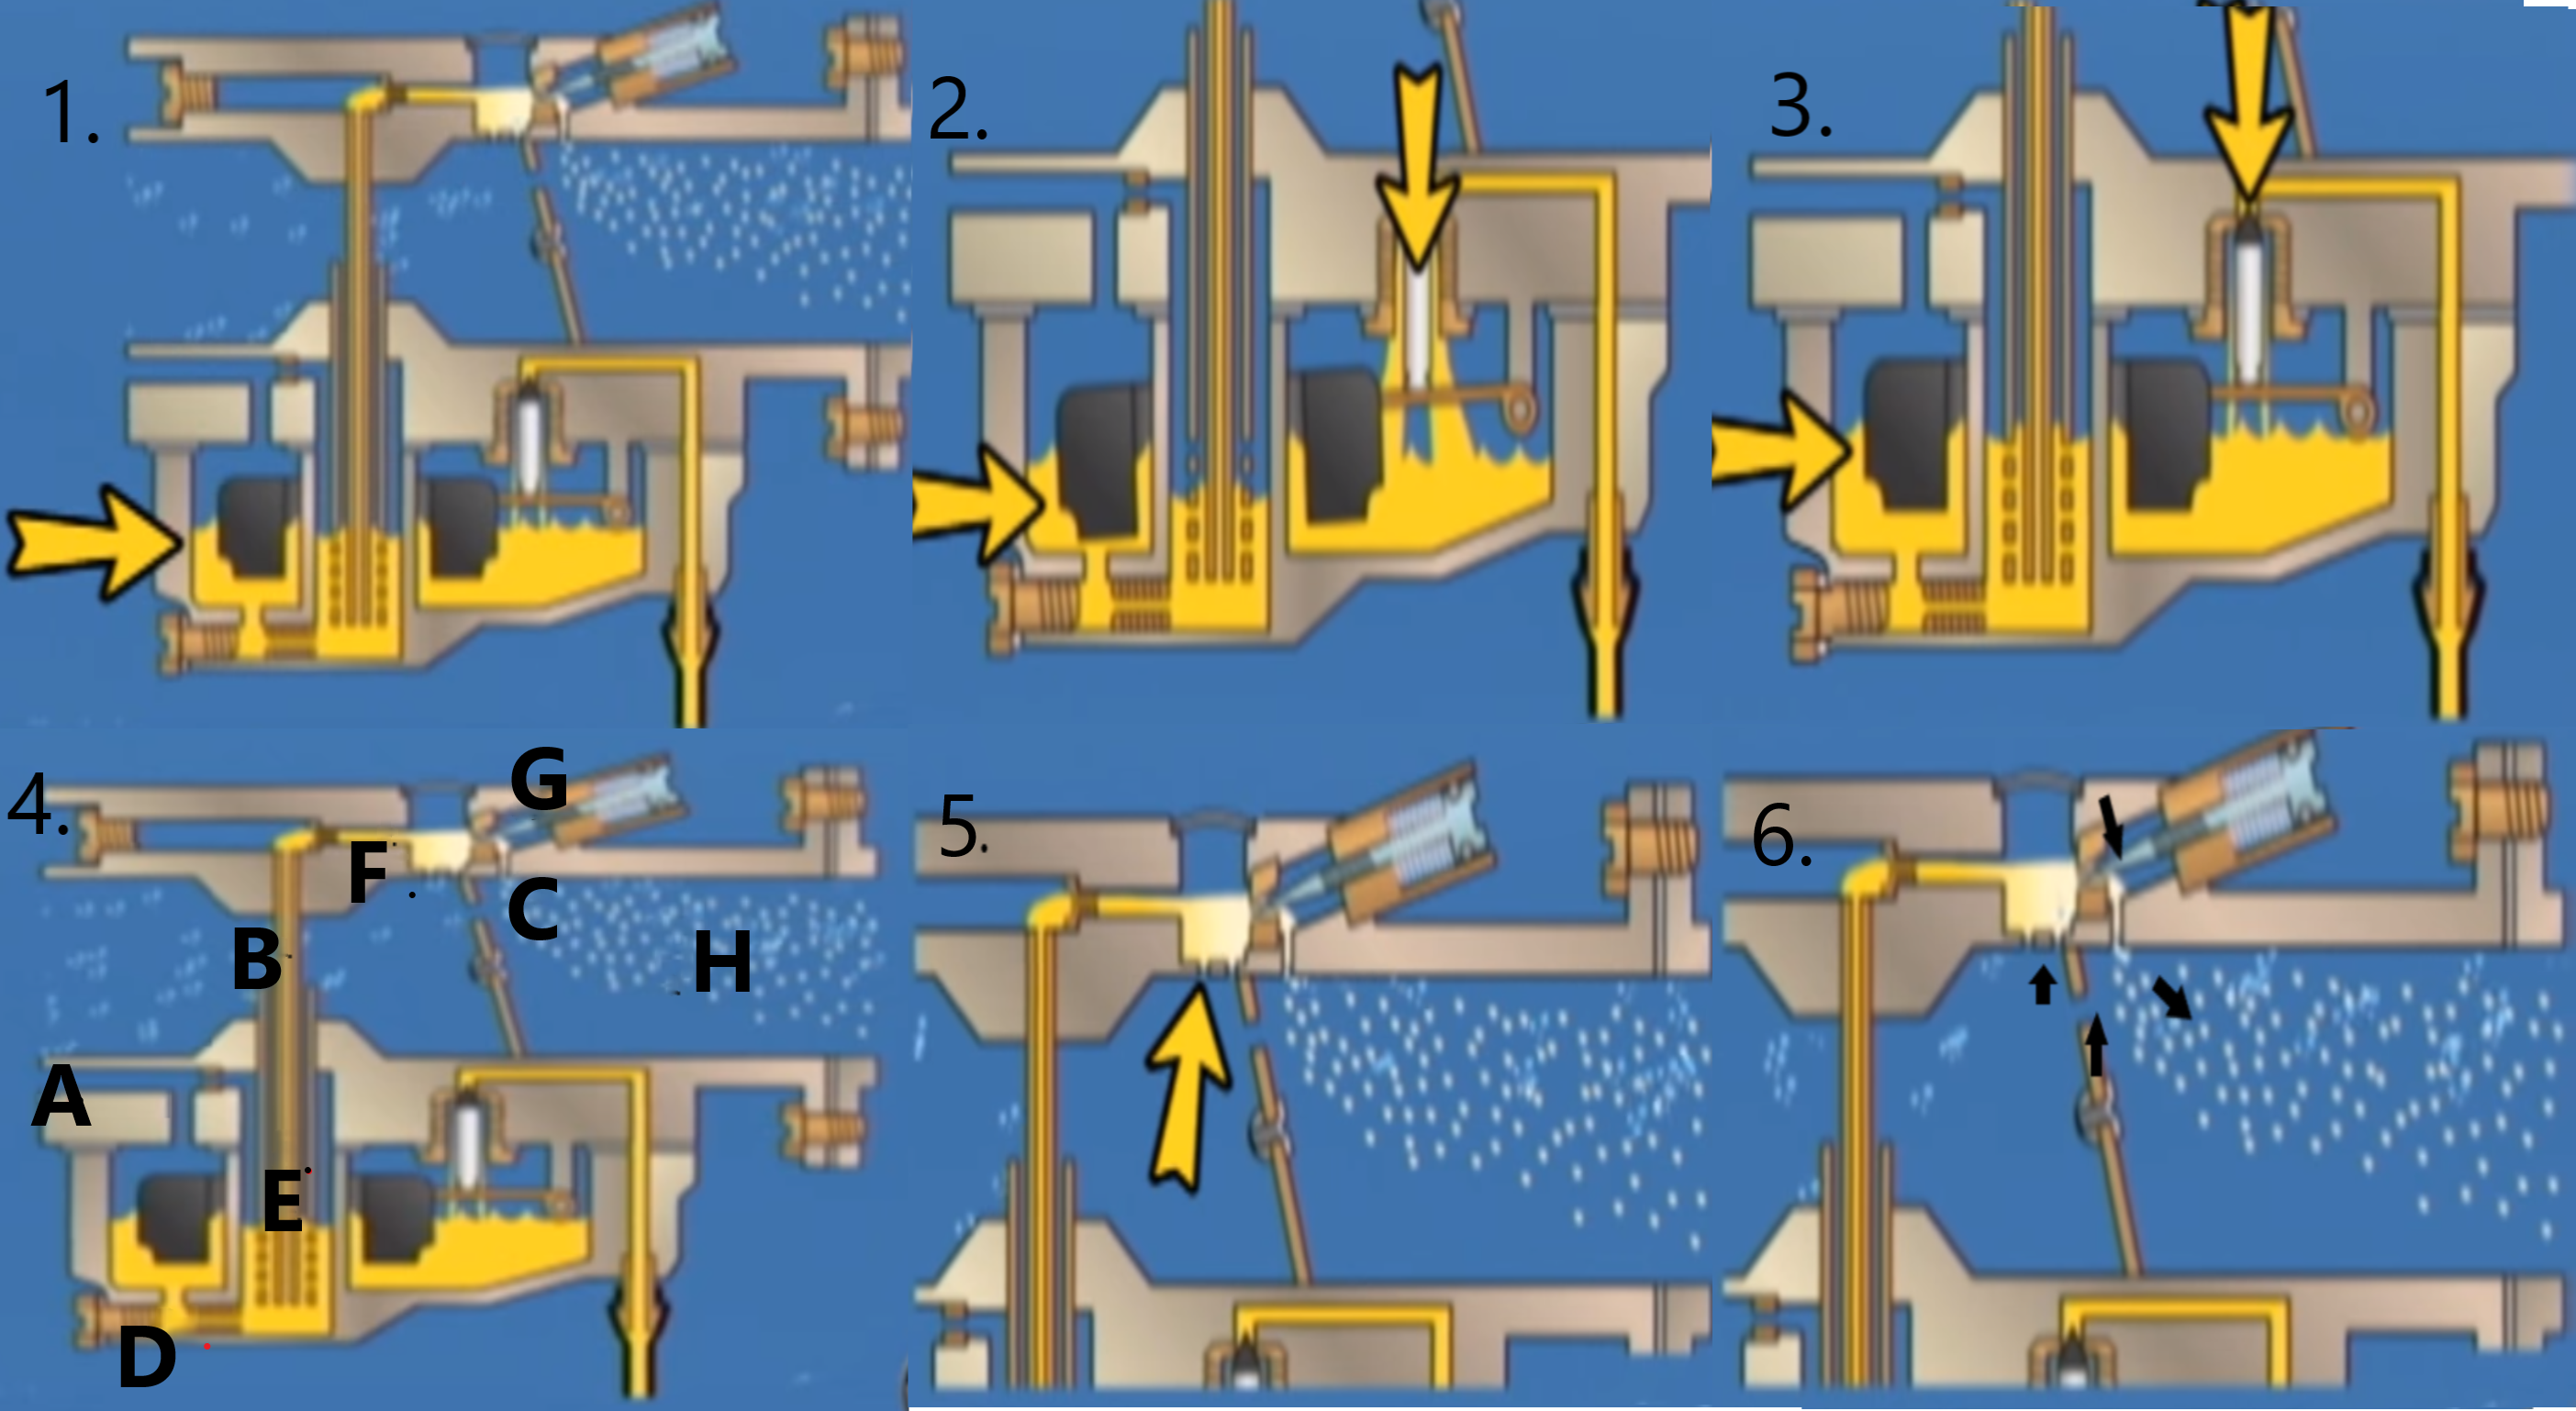 steps for a caburetor cicuit flow